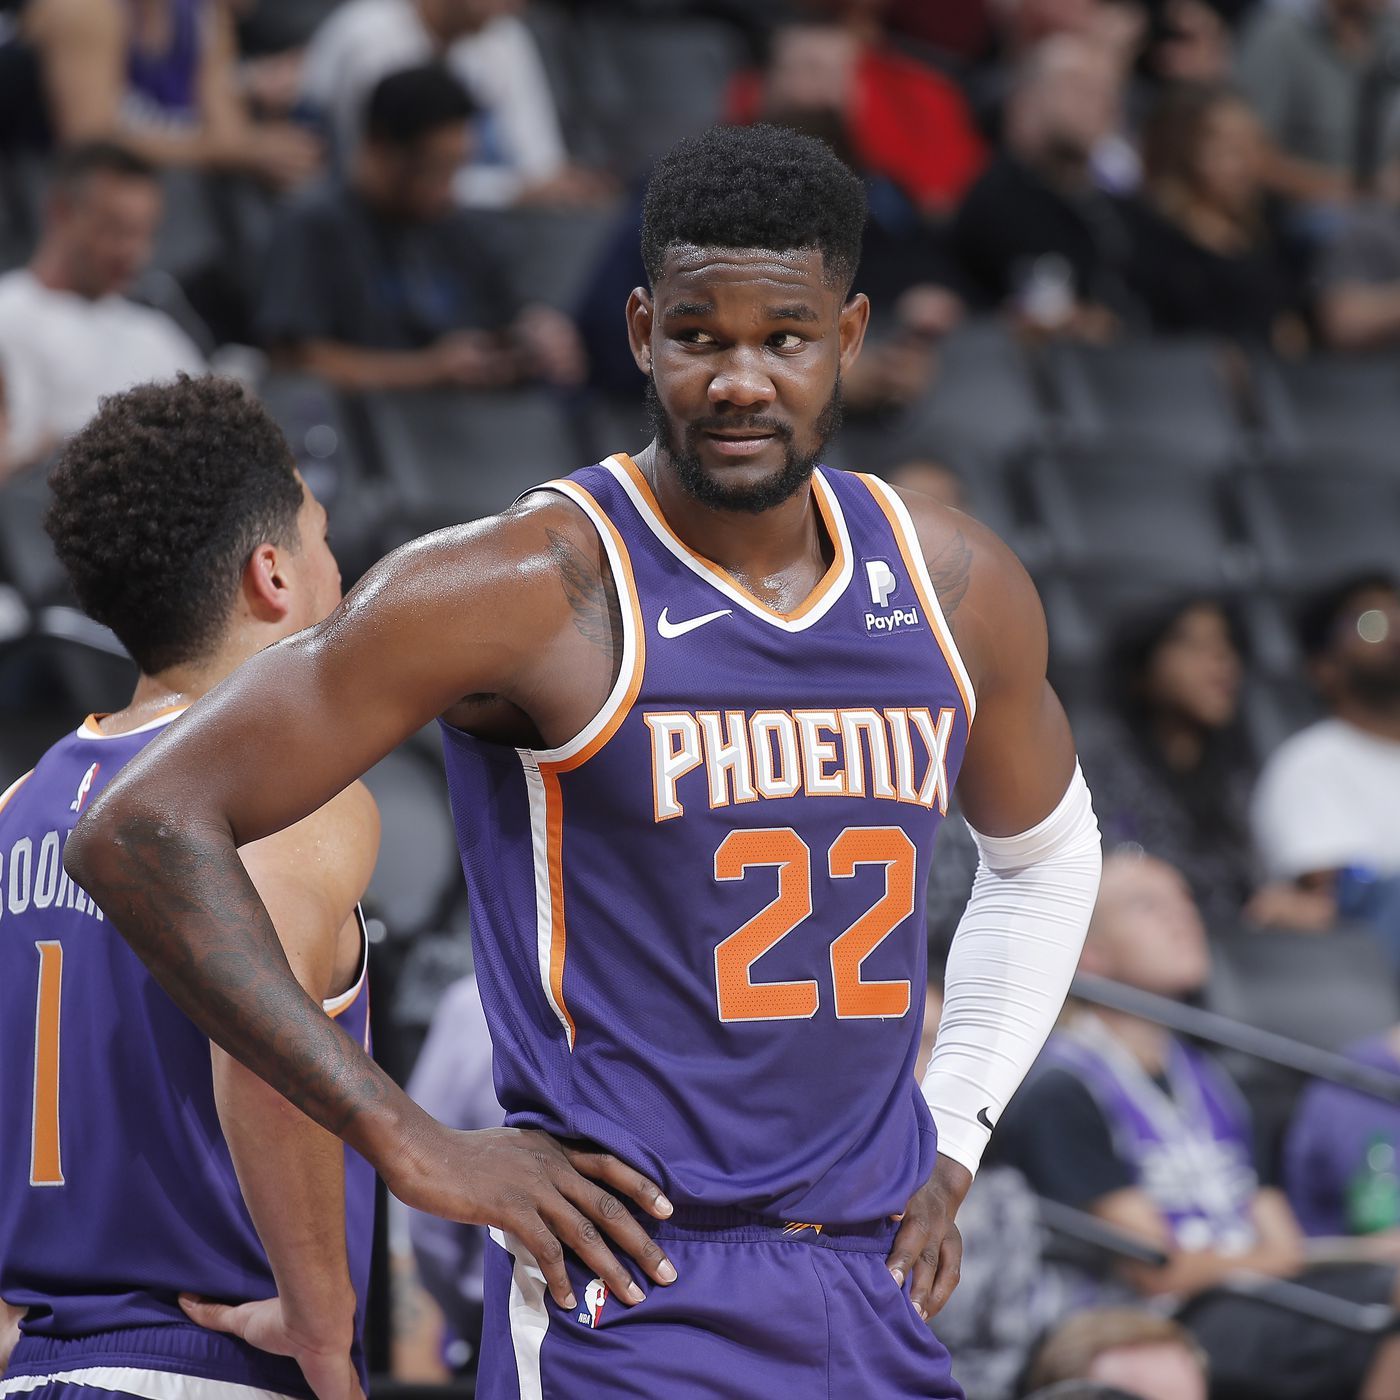 Deandre Ayton Phone number, Email Id, Fanmail, Instagram, Tiktok, and Contact Details